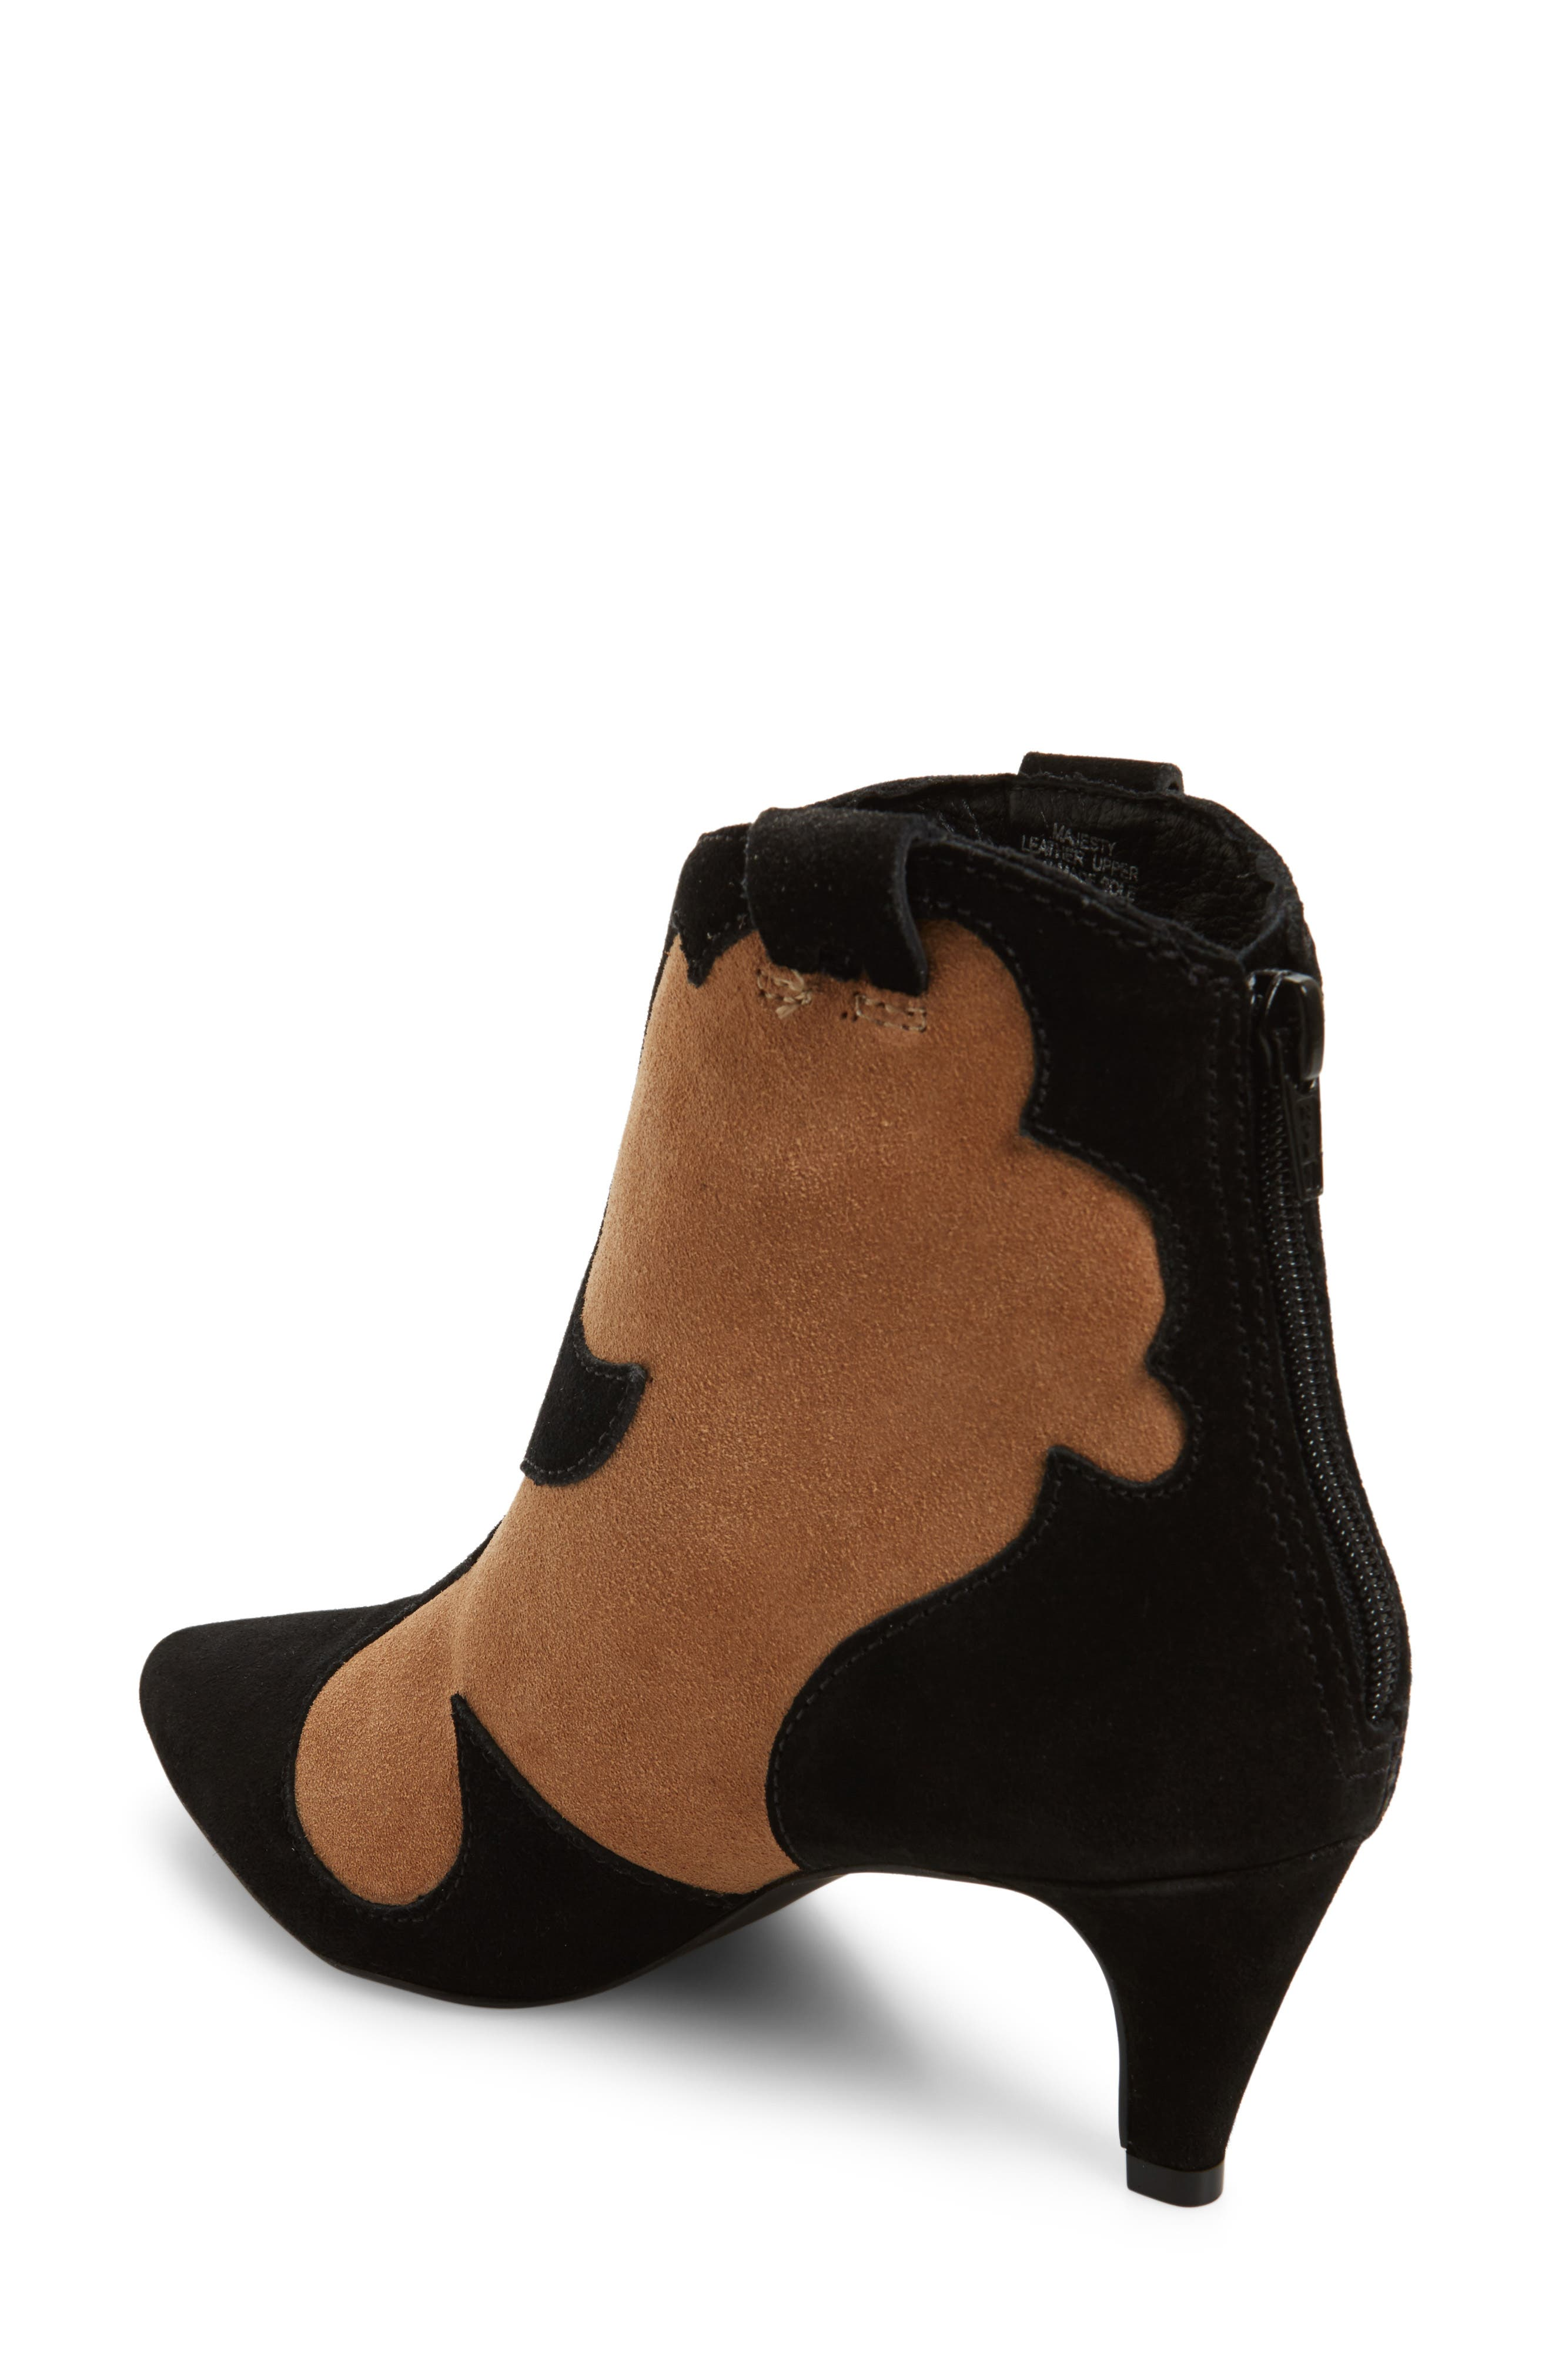 Majesty Two-Tone Bootie,                             Alternate thumbnail 2, color,                             001